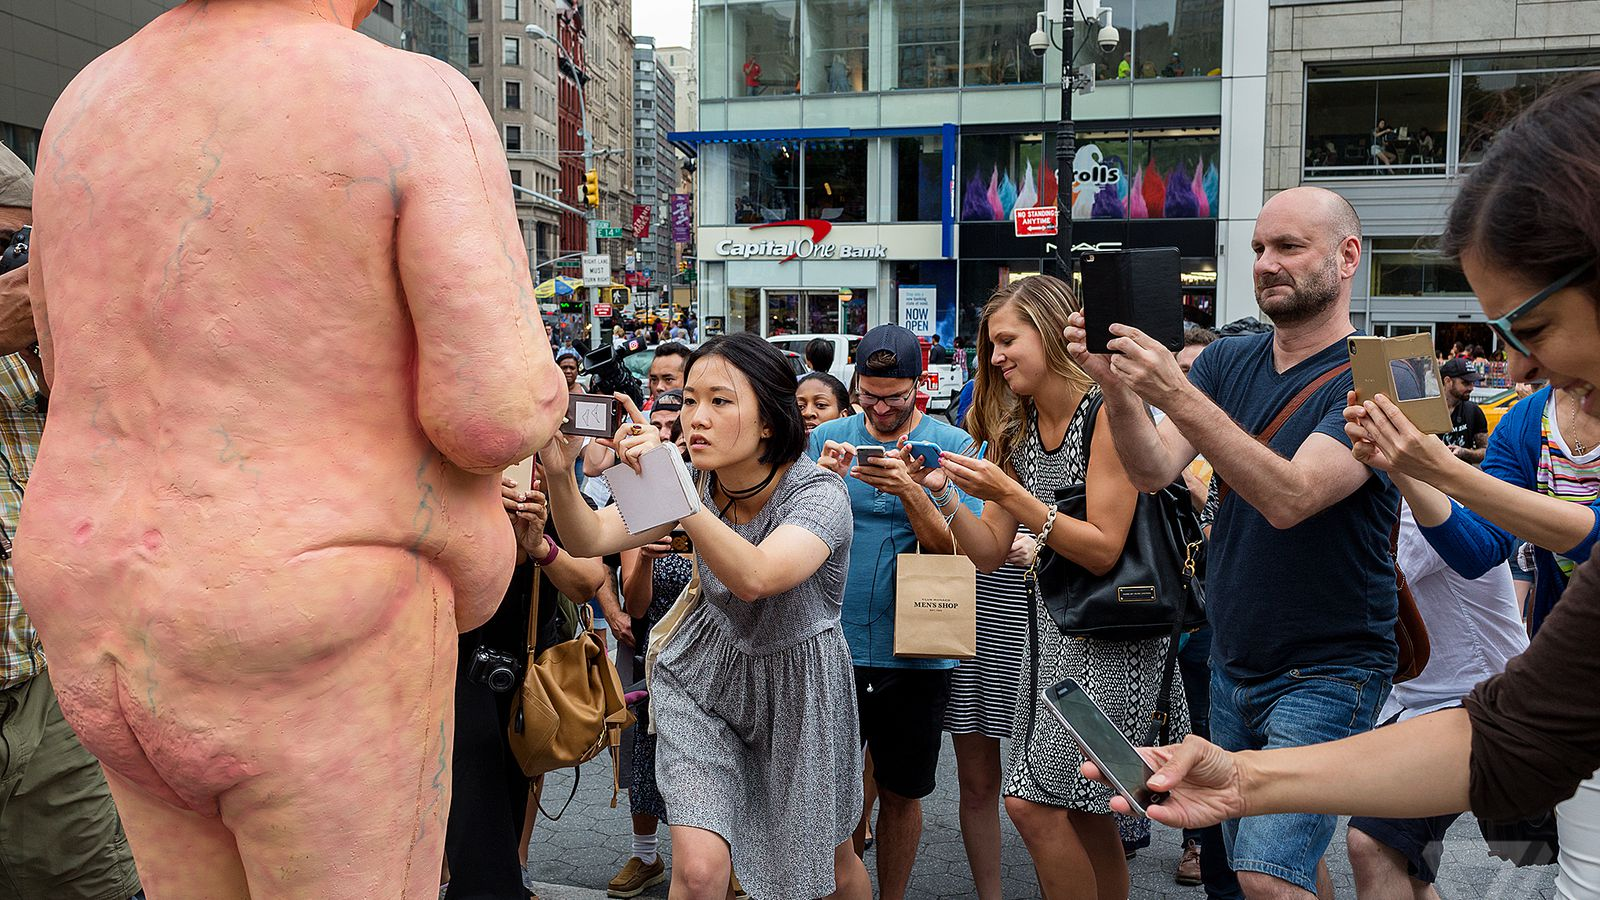 11 Photos Of Nycs Naked Trump Statue - The Verge-8429